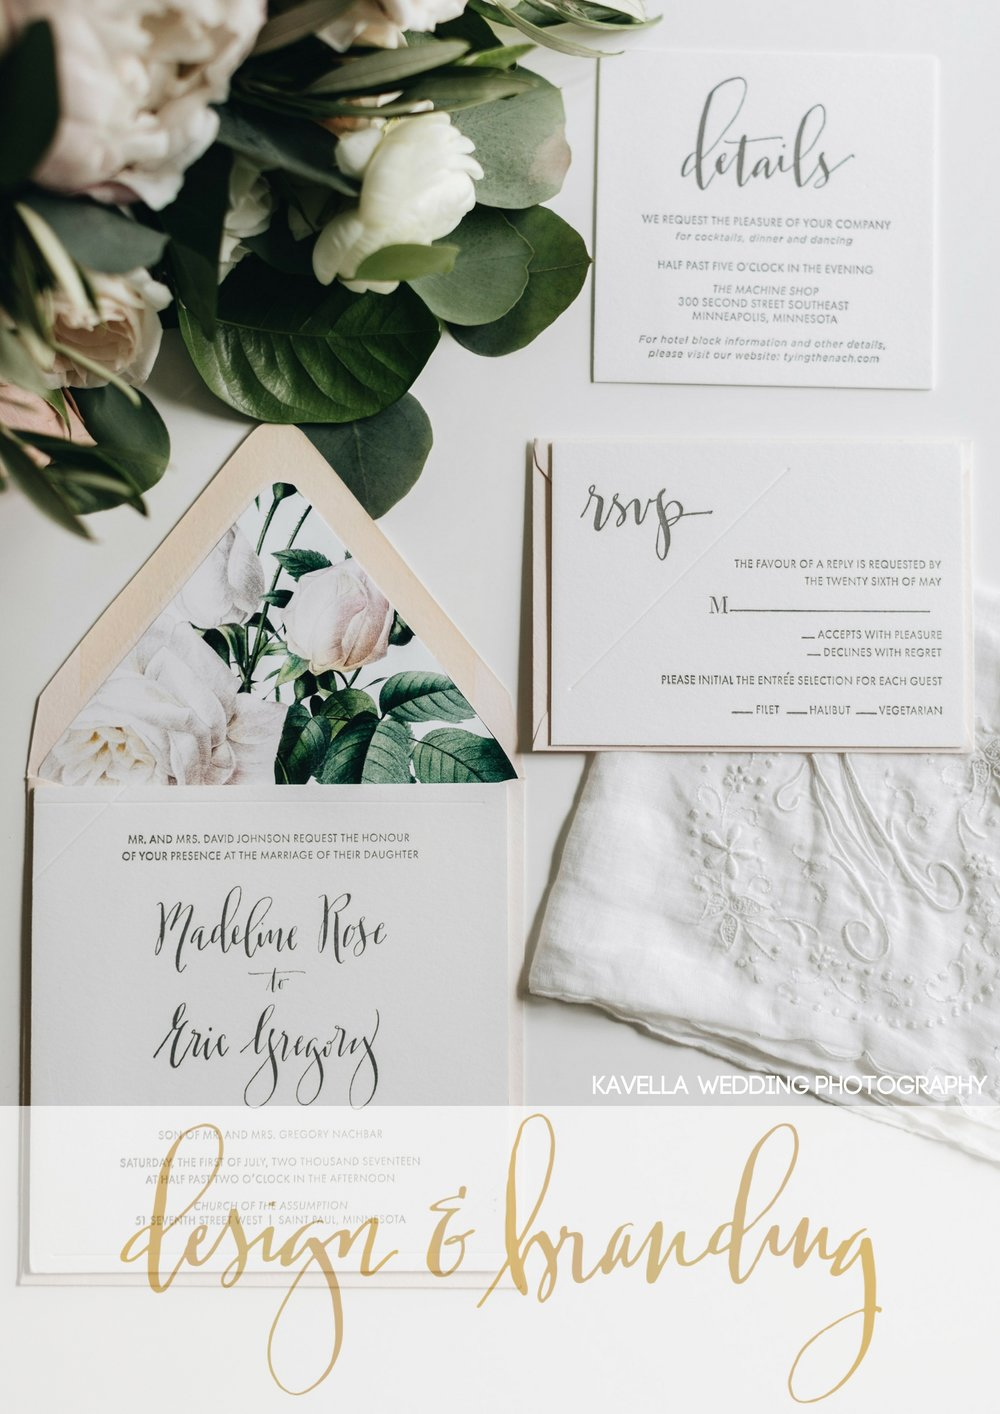 Minneapolis Wedding Planner Design and Branding.jpg